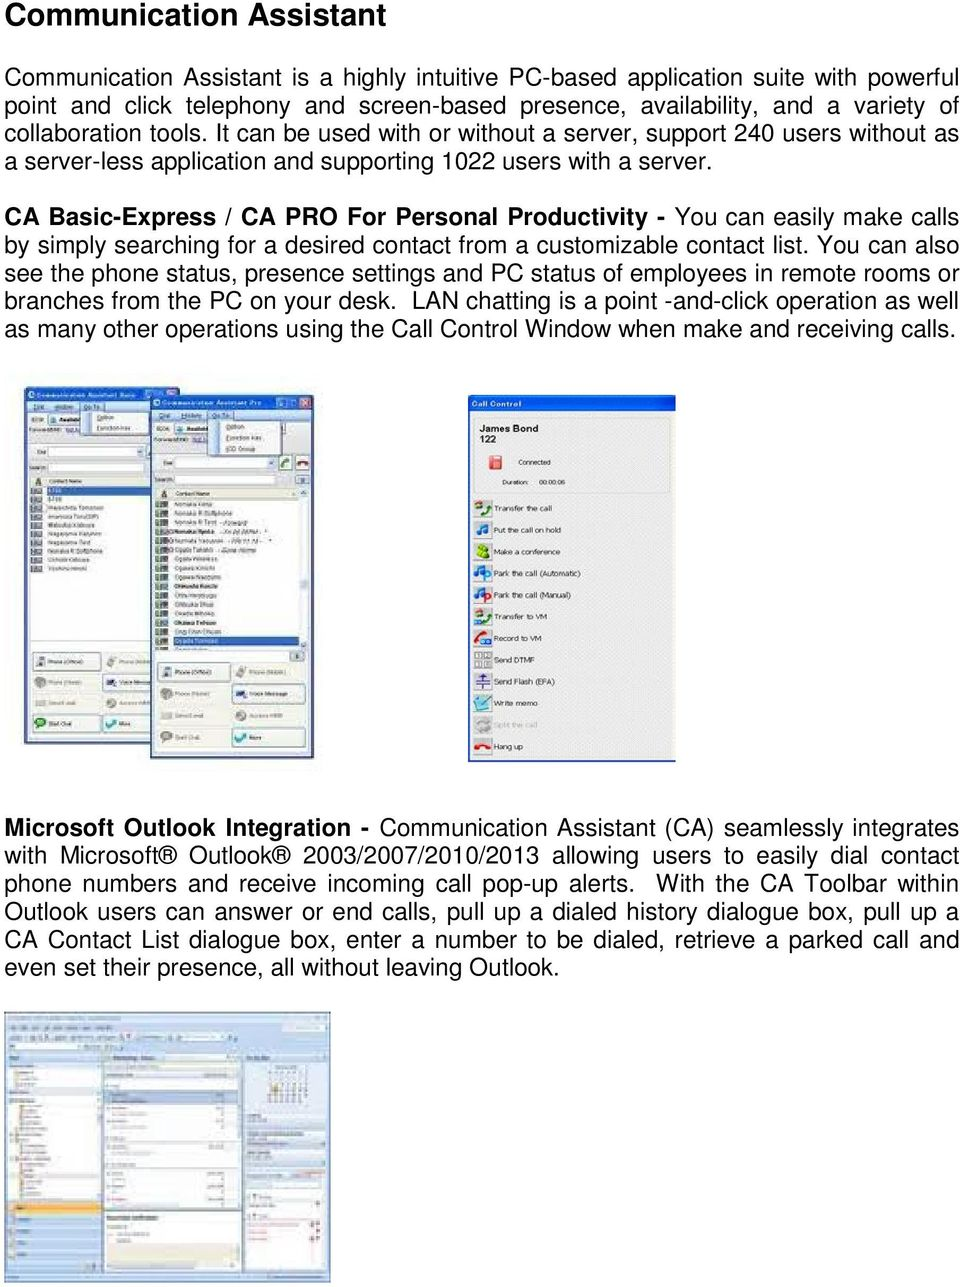 CA Basic-Express / CA PRO For Personal Productivity - You can easily make calls by simply searching for a desired contact from a customizable contact list.